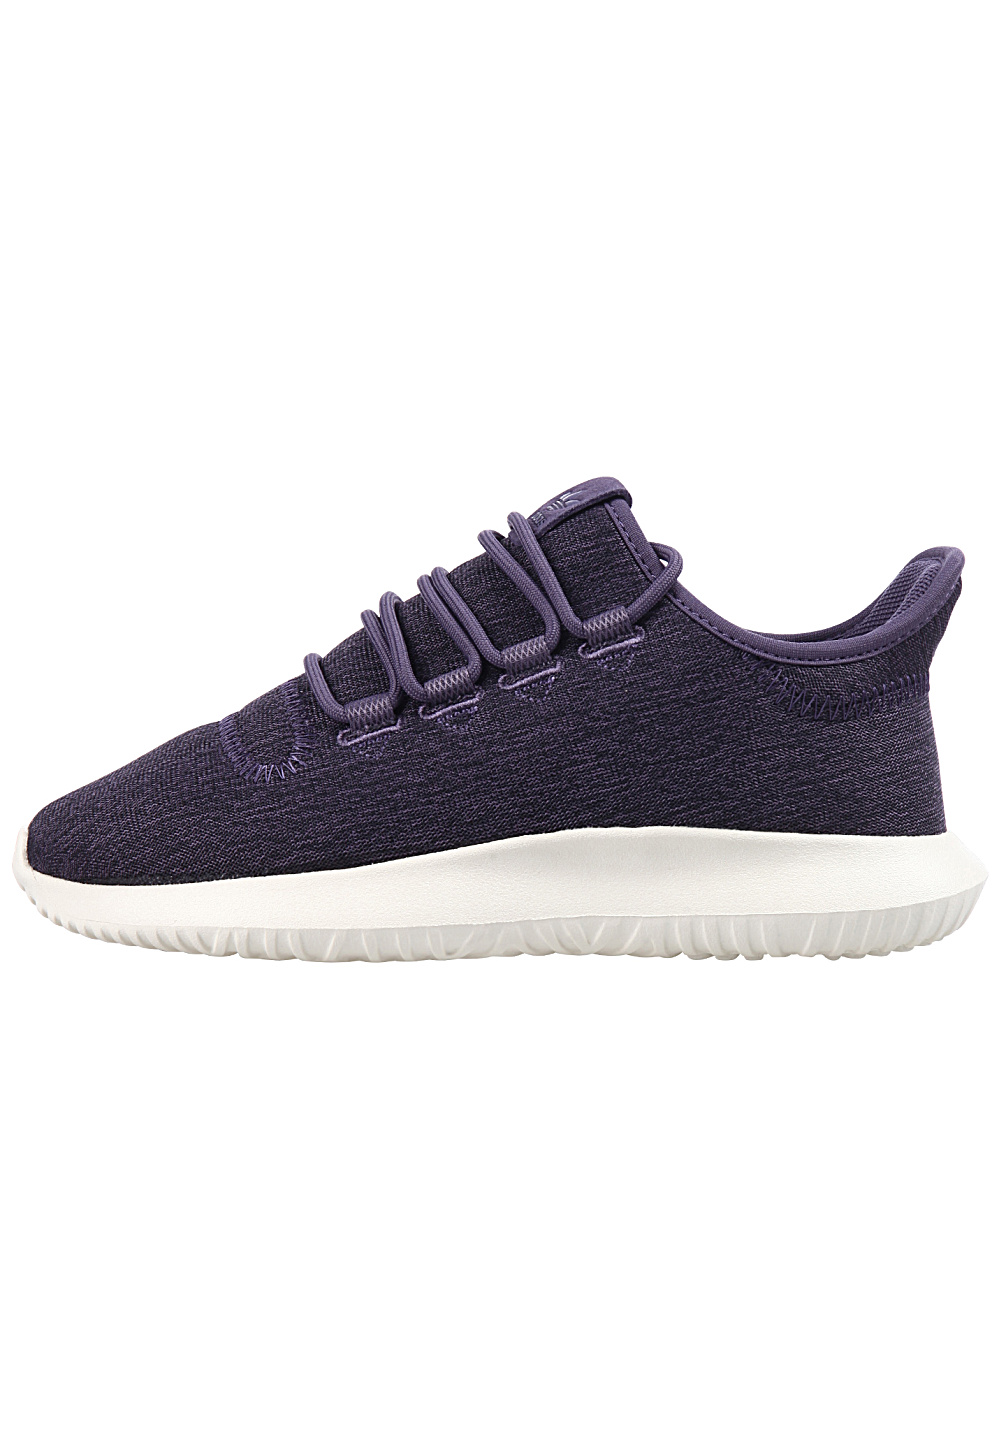 Adidas Originals Tubular Shadow Sneakers (paars)